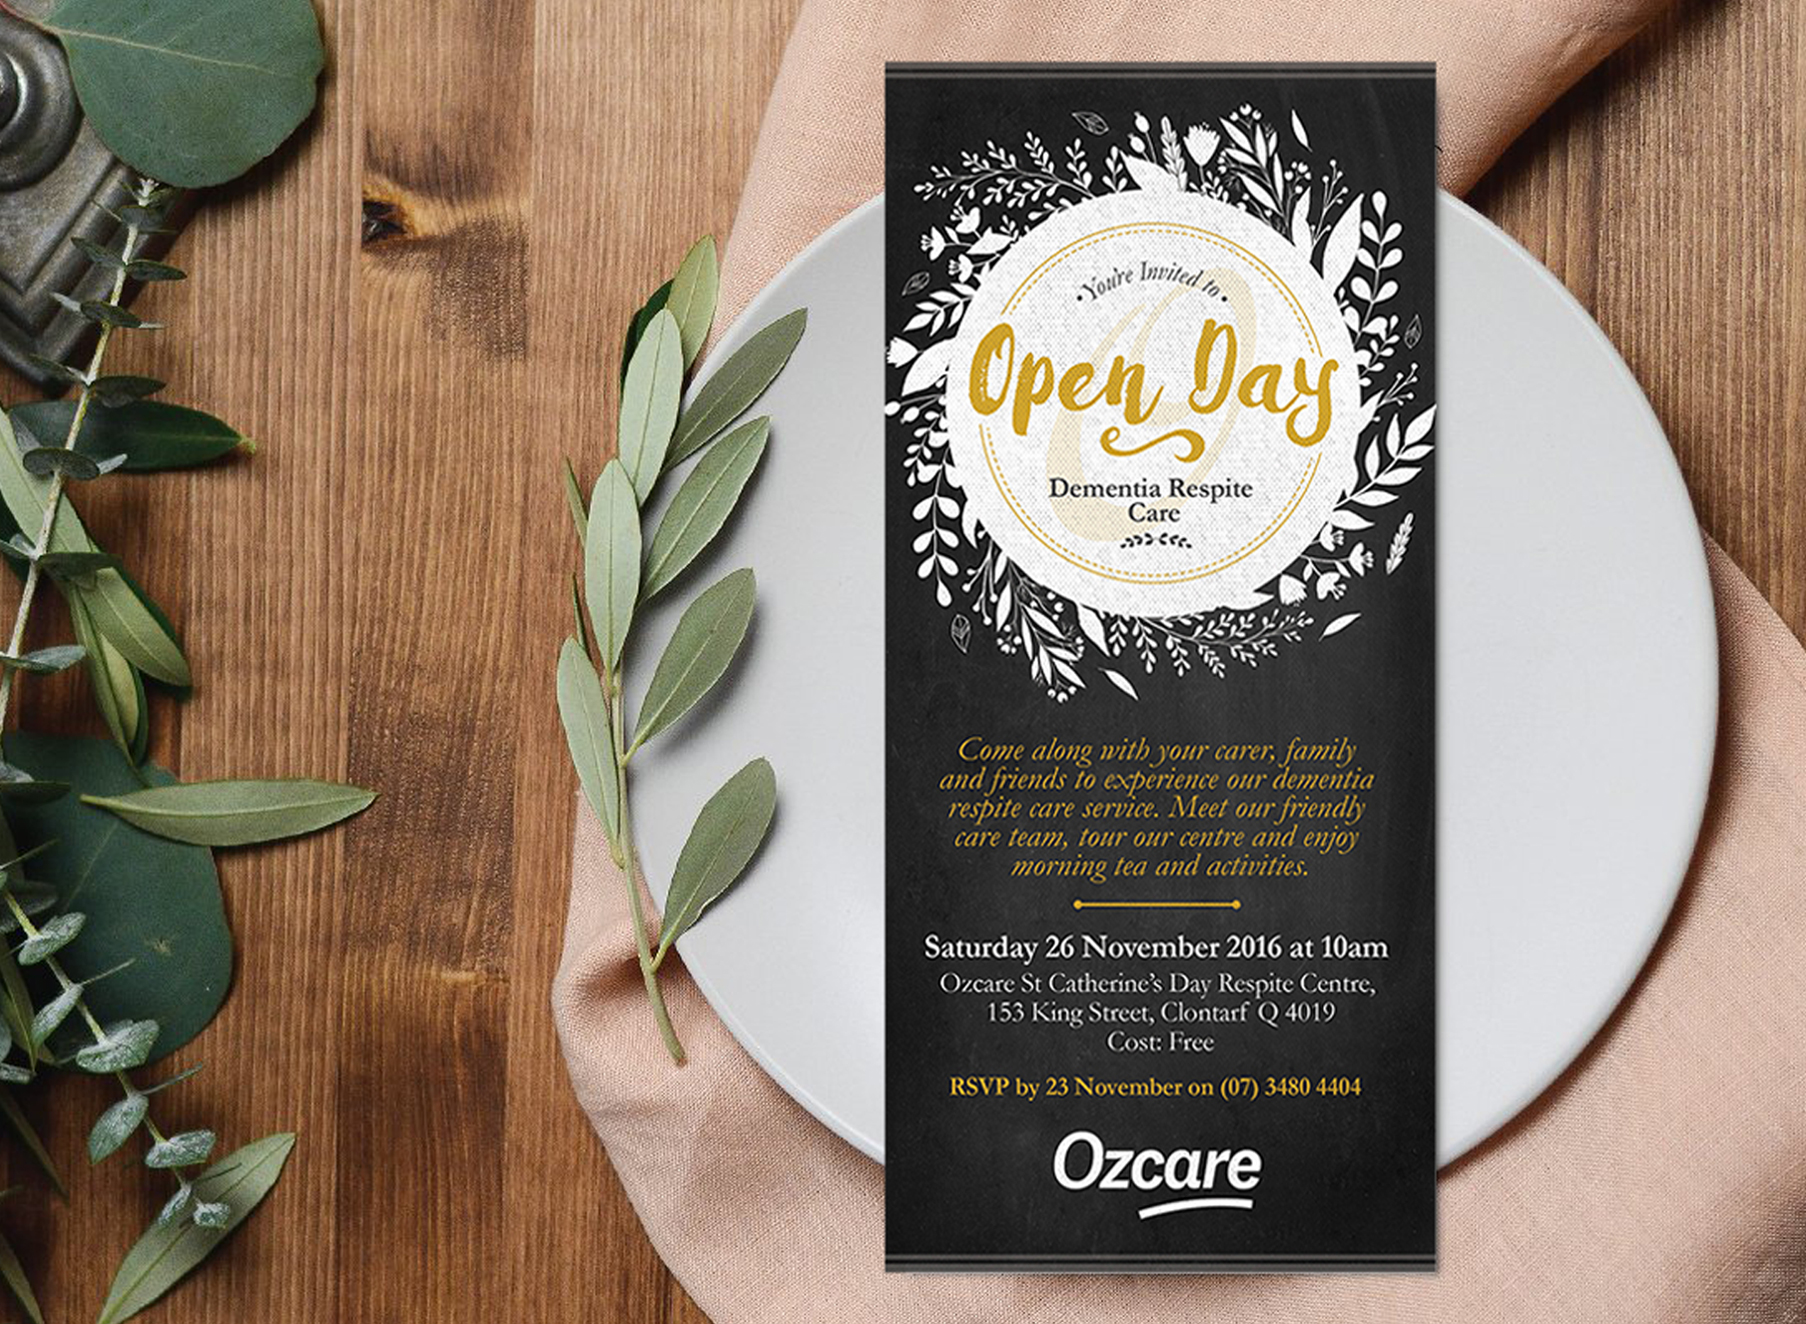 Ozcare Dementia Respite Invite - Folio Graphic Design